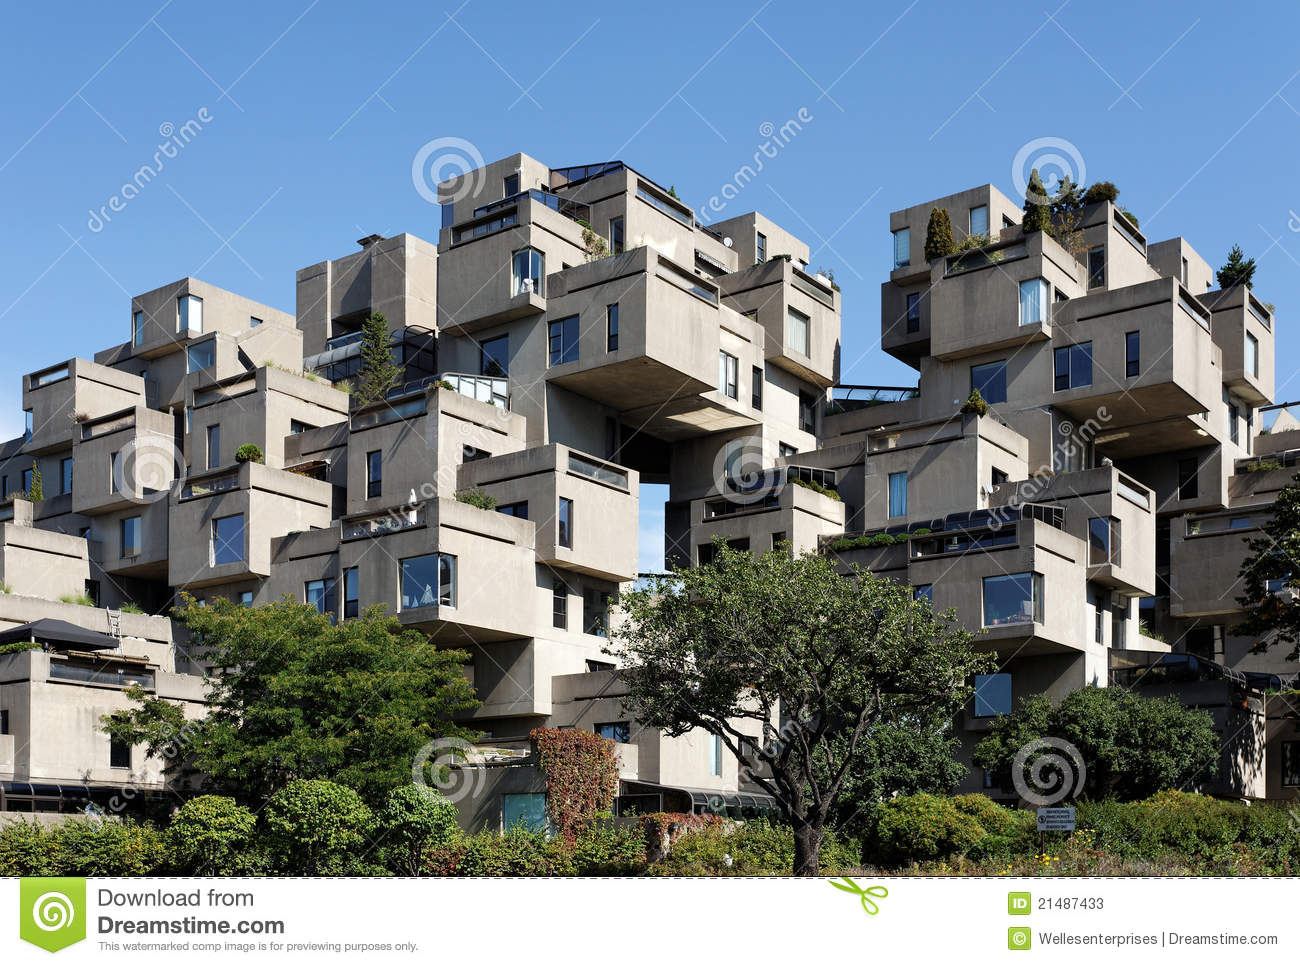 Habitat 67 editorial stock photo image 21487433 for Architecture celebre